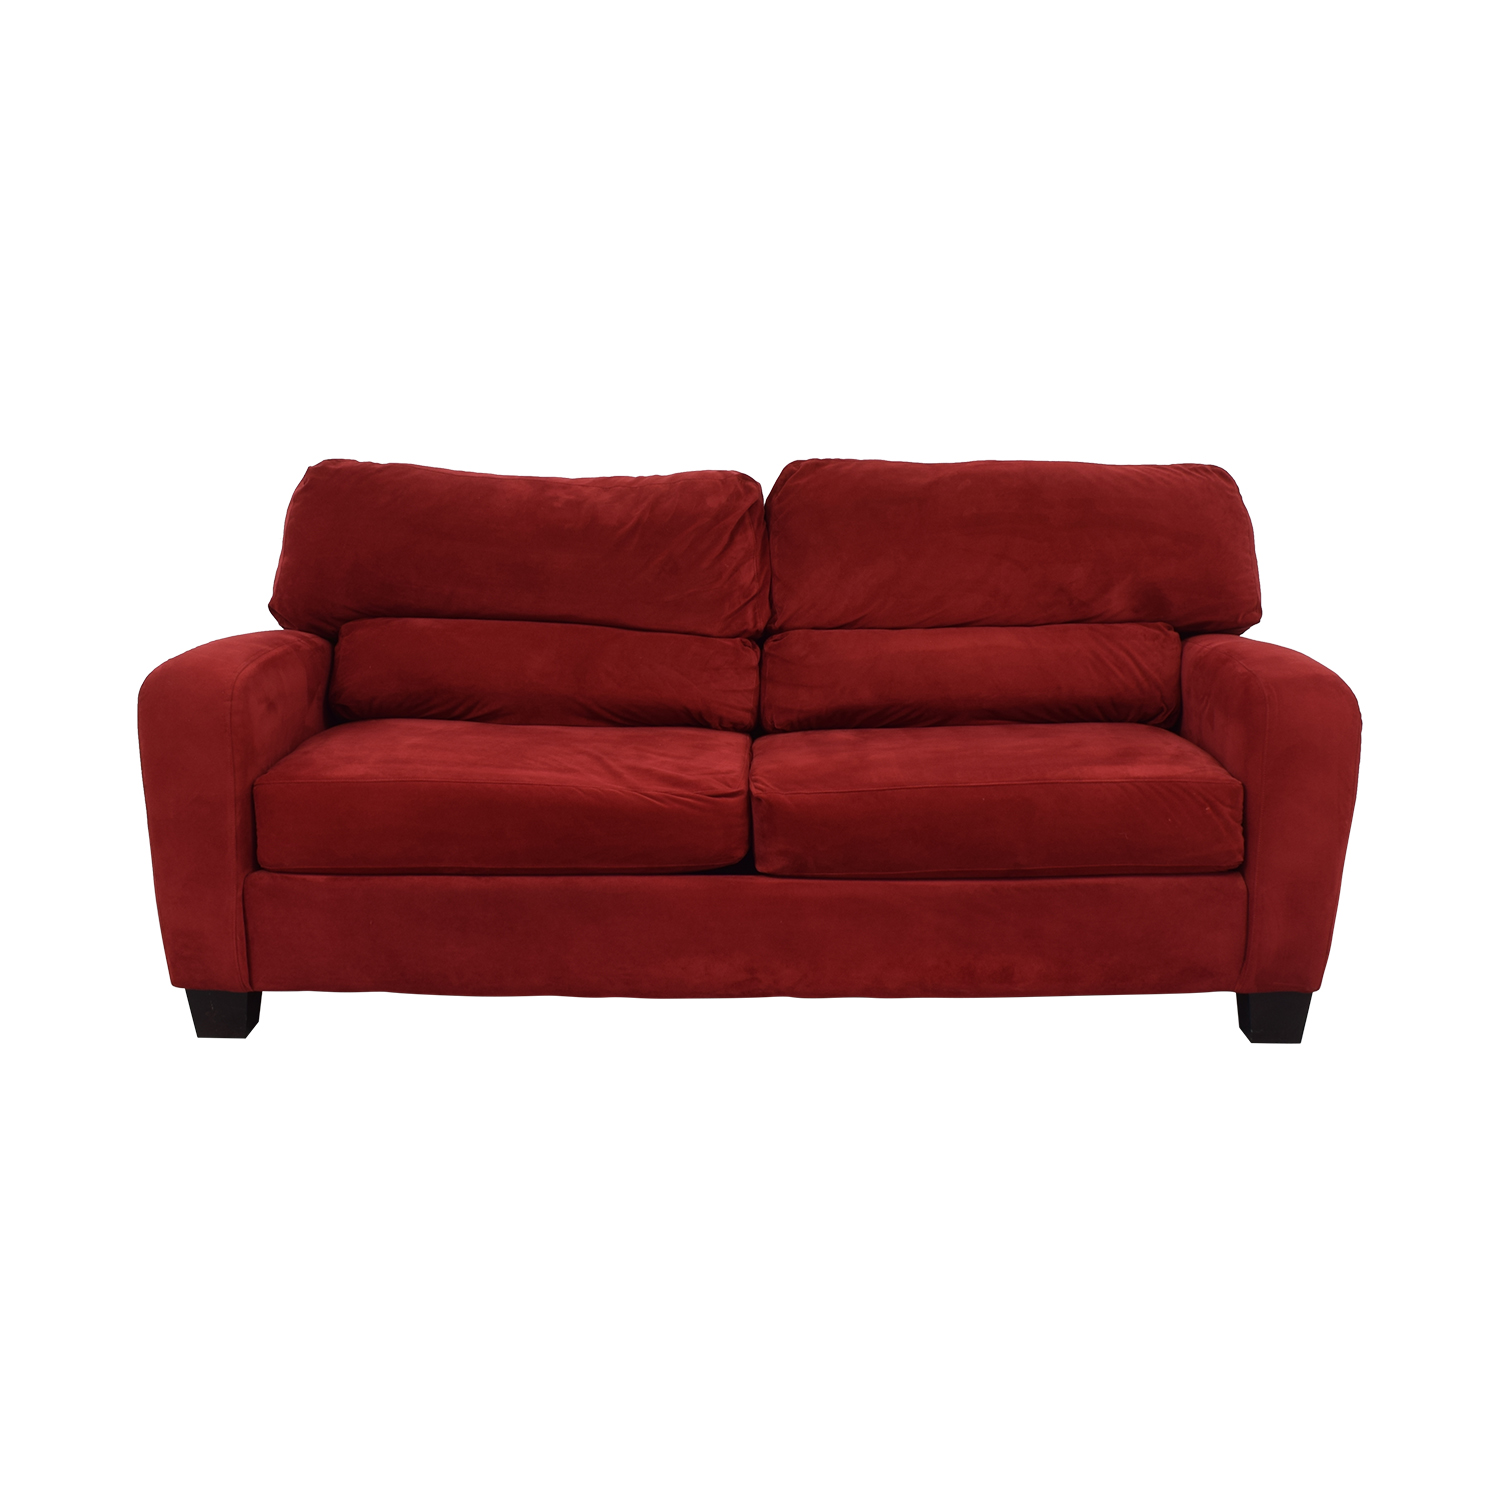 Broyhill Furniture Broyhill Two-Cushion Sofa on sale